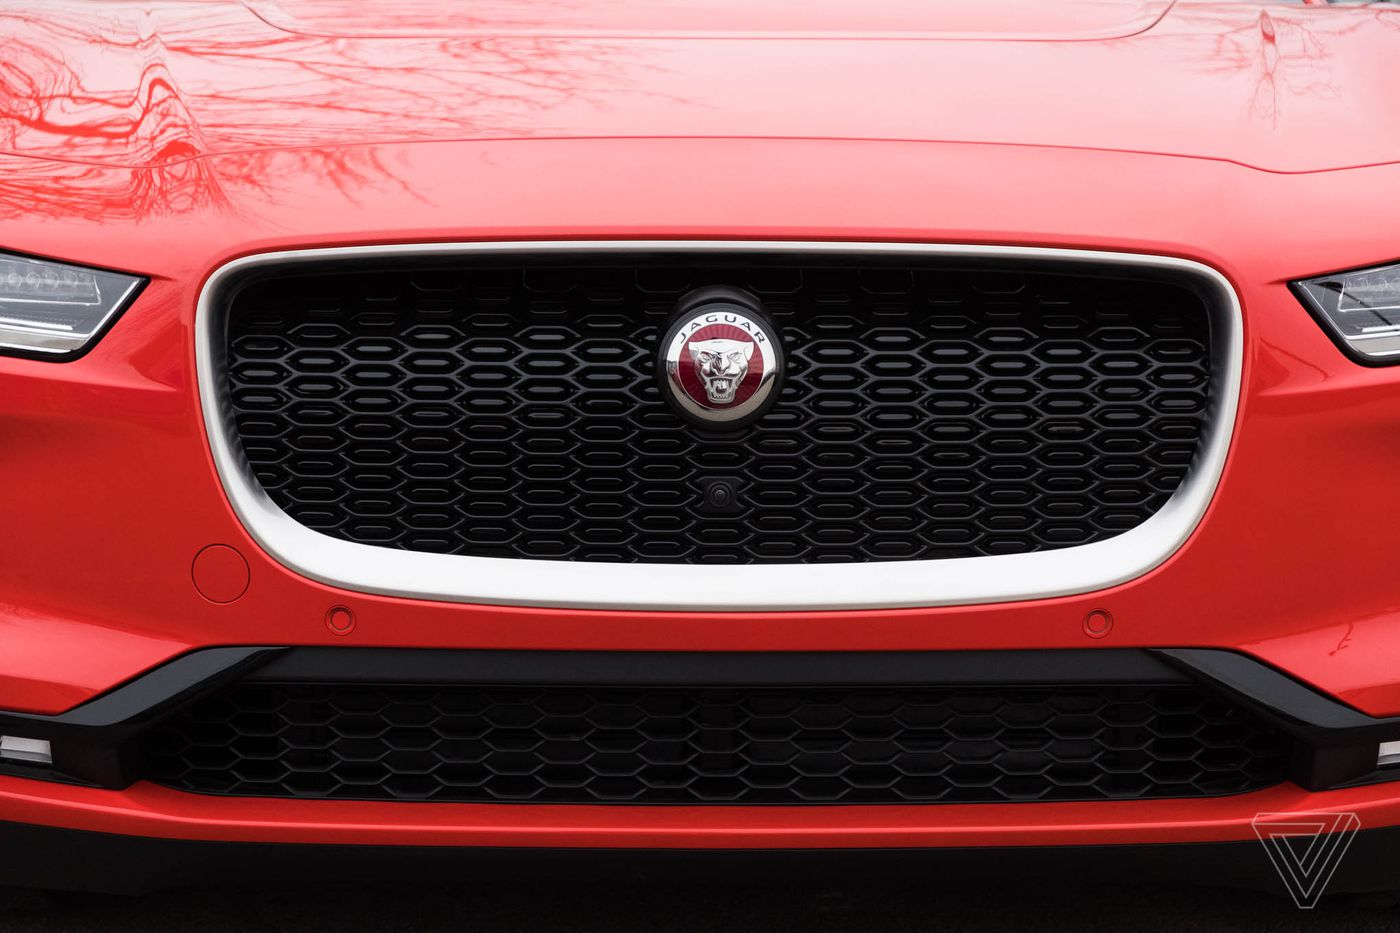 One minute in the Jaguar I-Pace was enough to learn it's